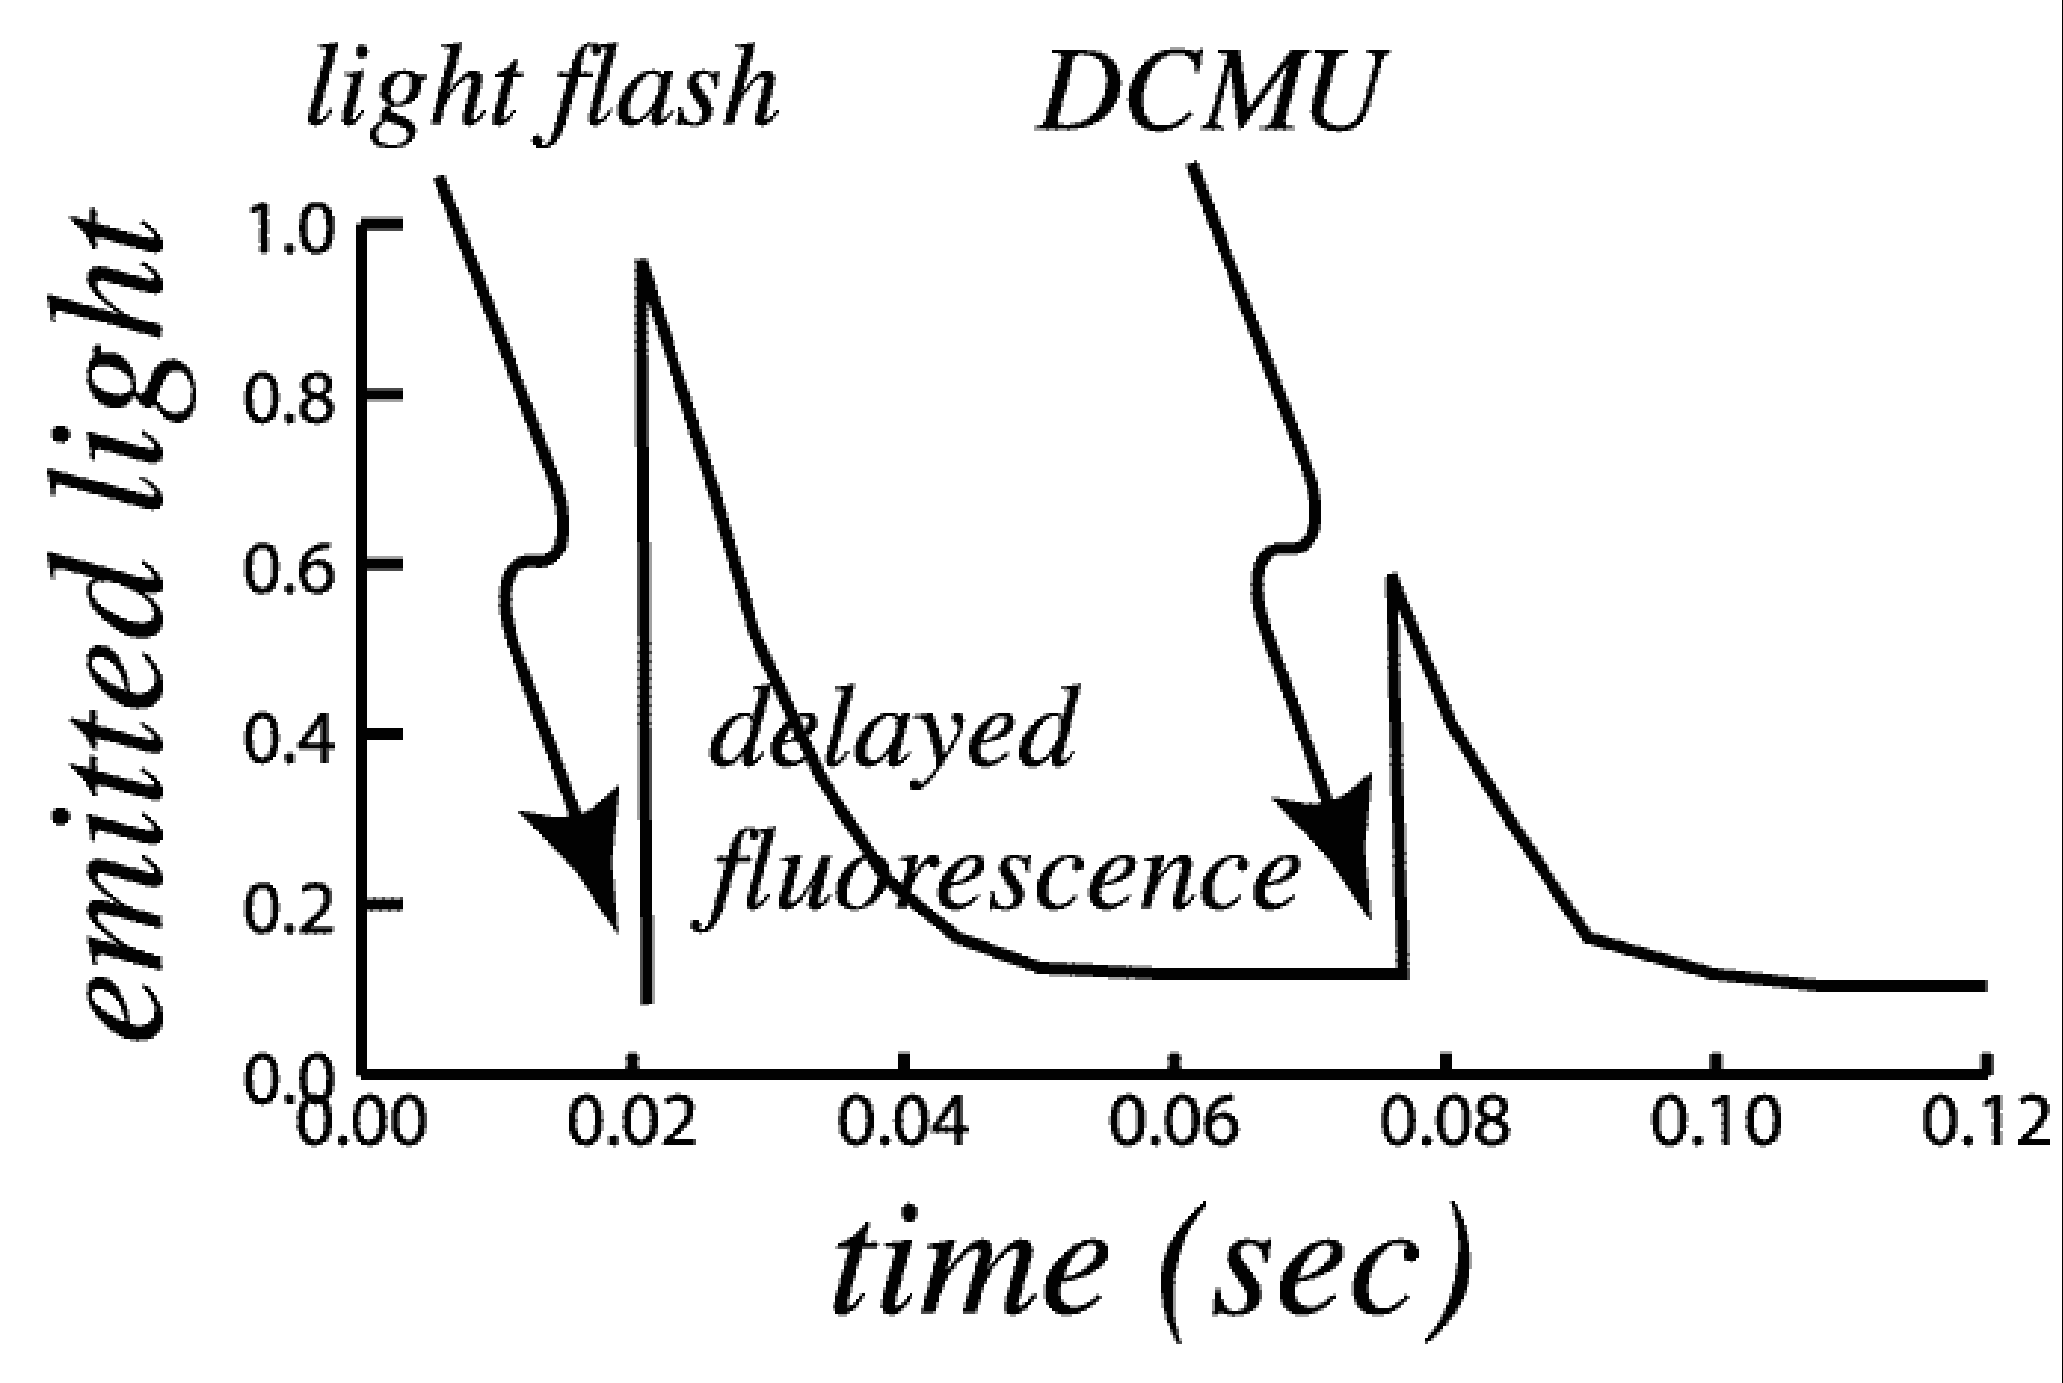 experiment demonstrates delayed fluorescence using DCMU